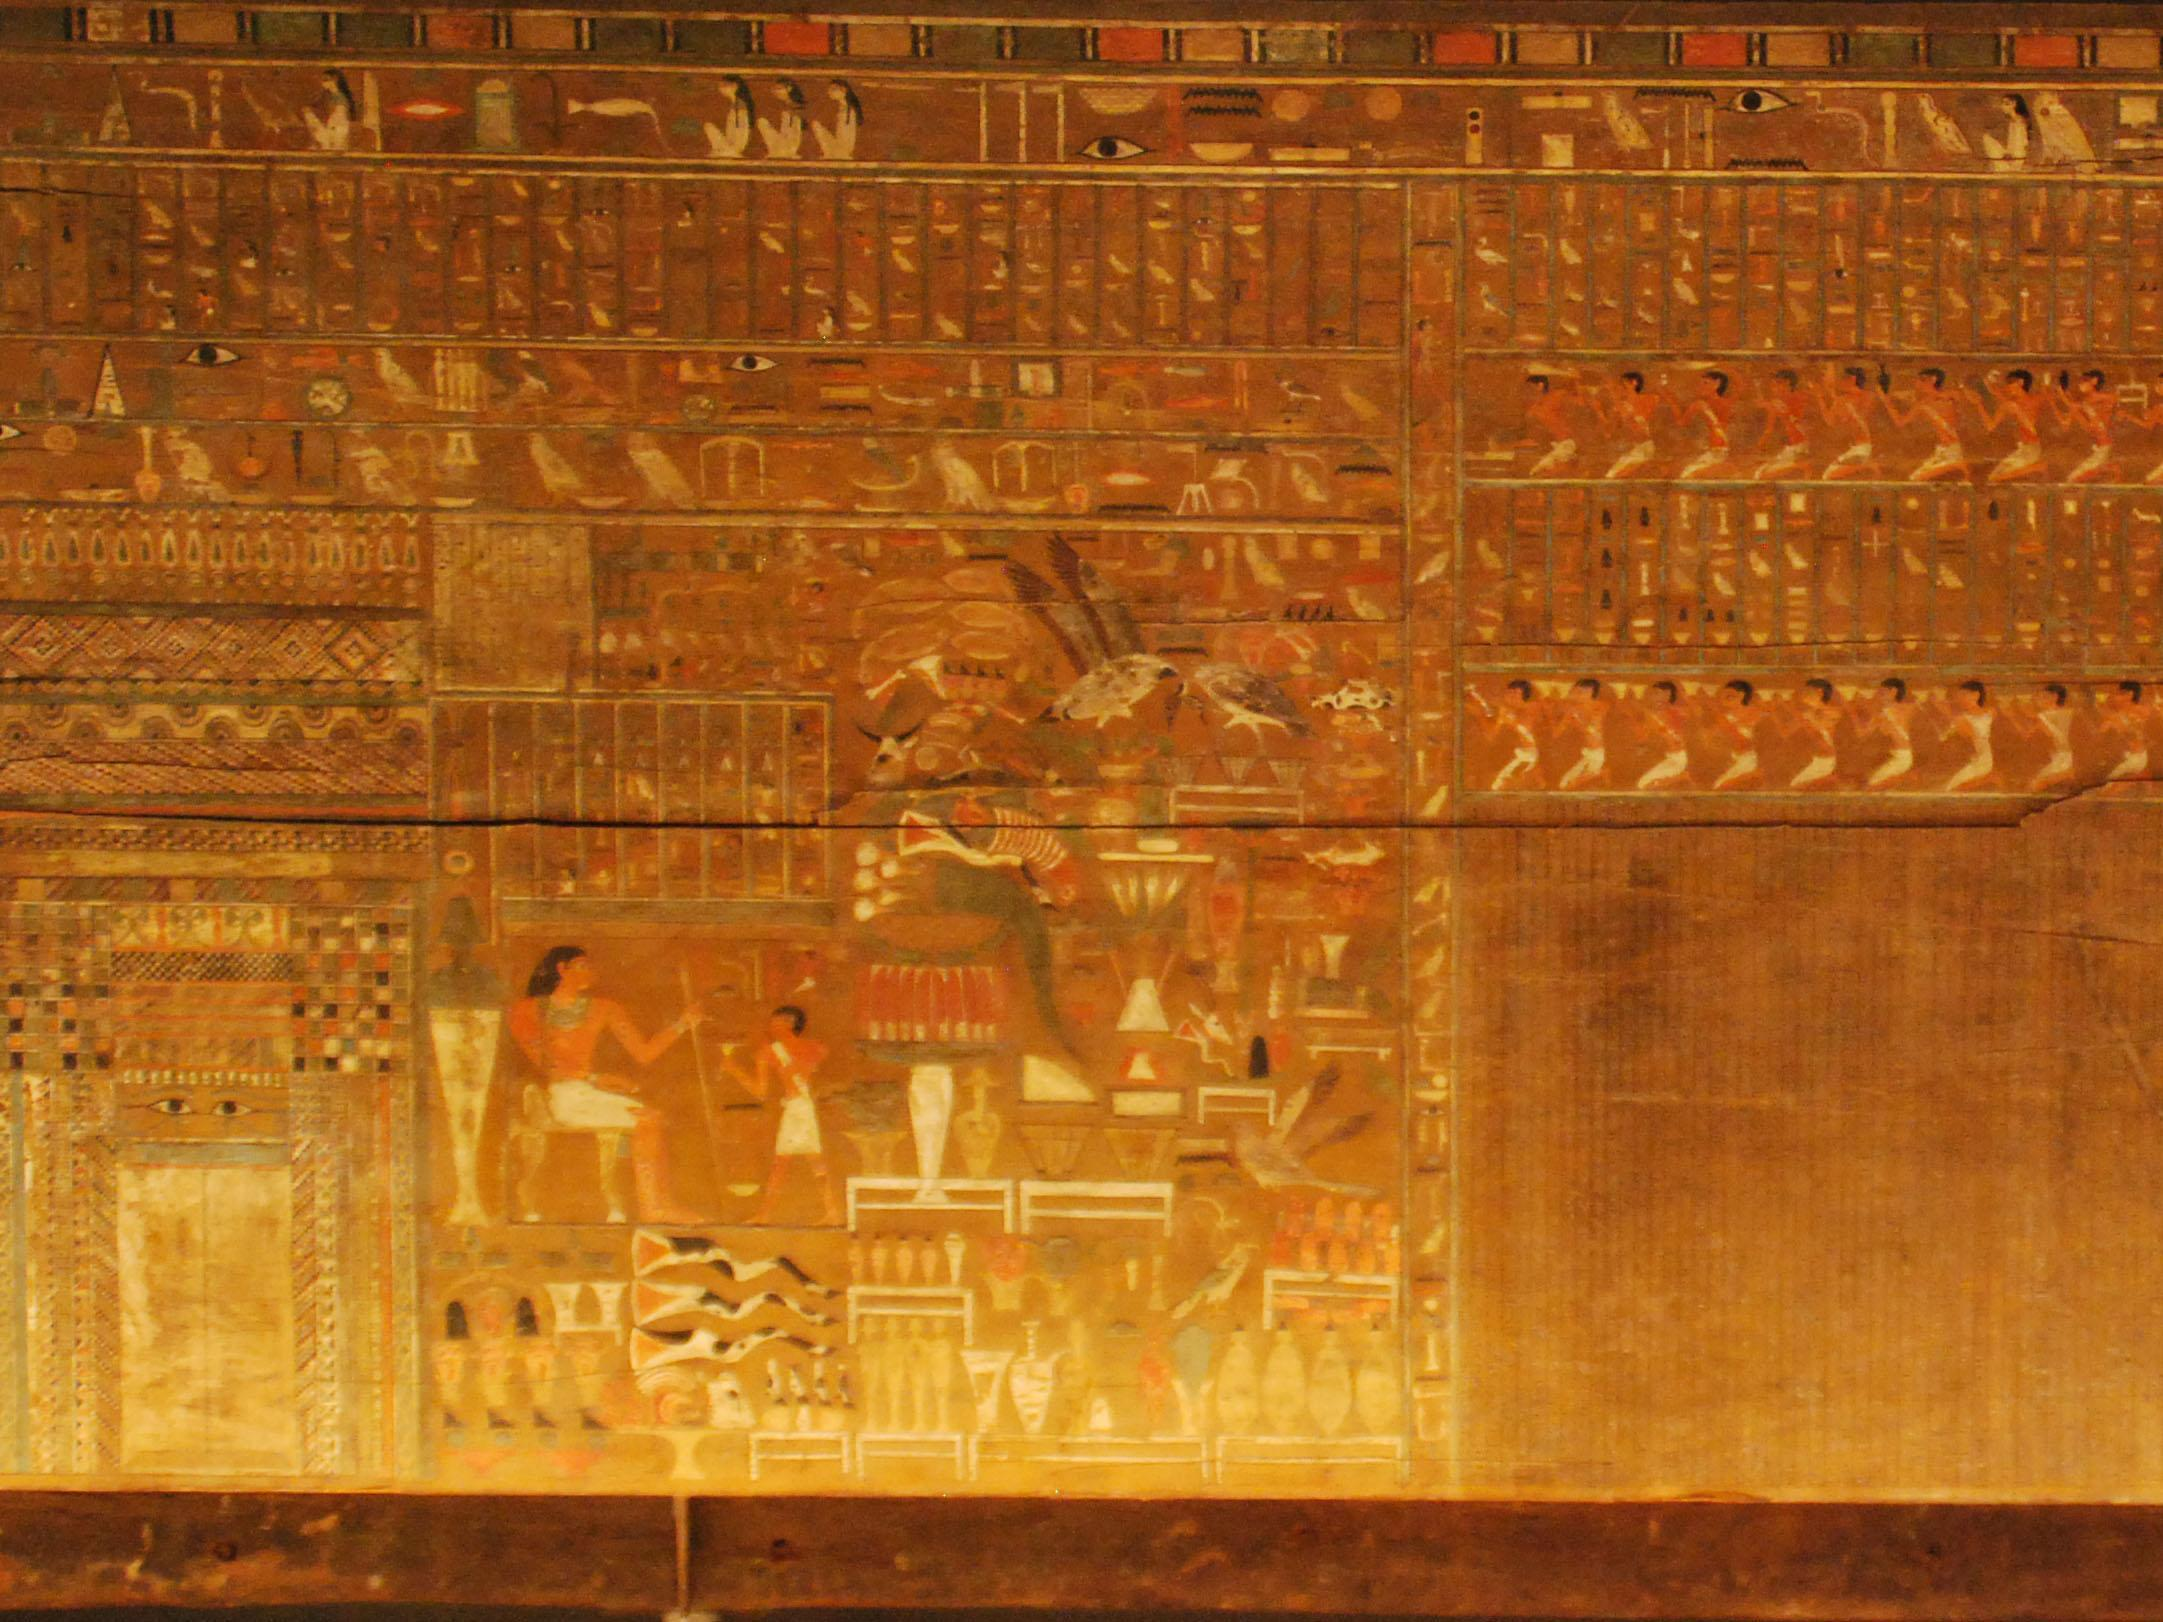 Tomb secrets: The FBI cracks the DNA code on an ancient